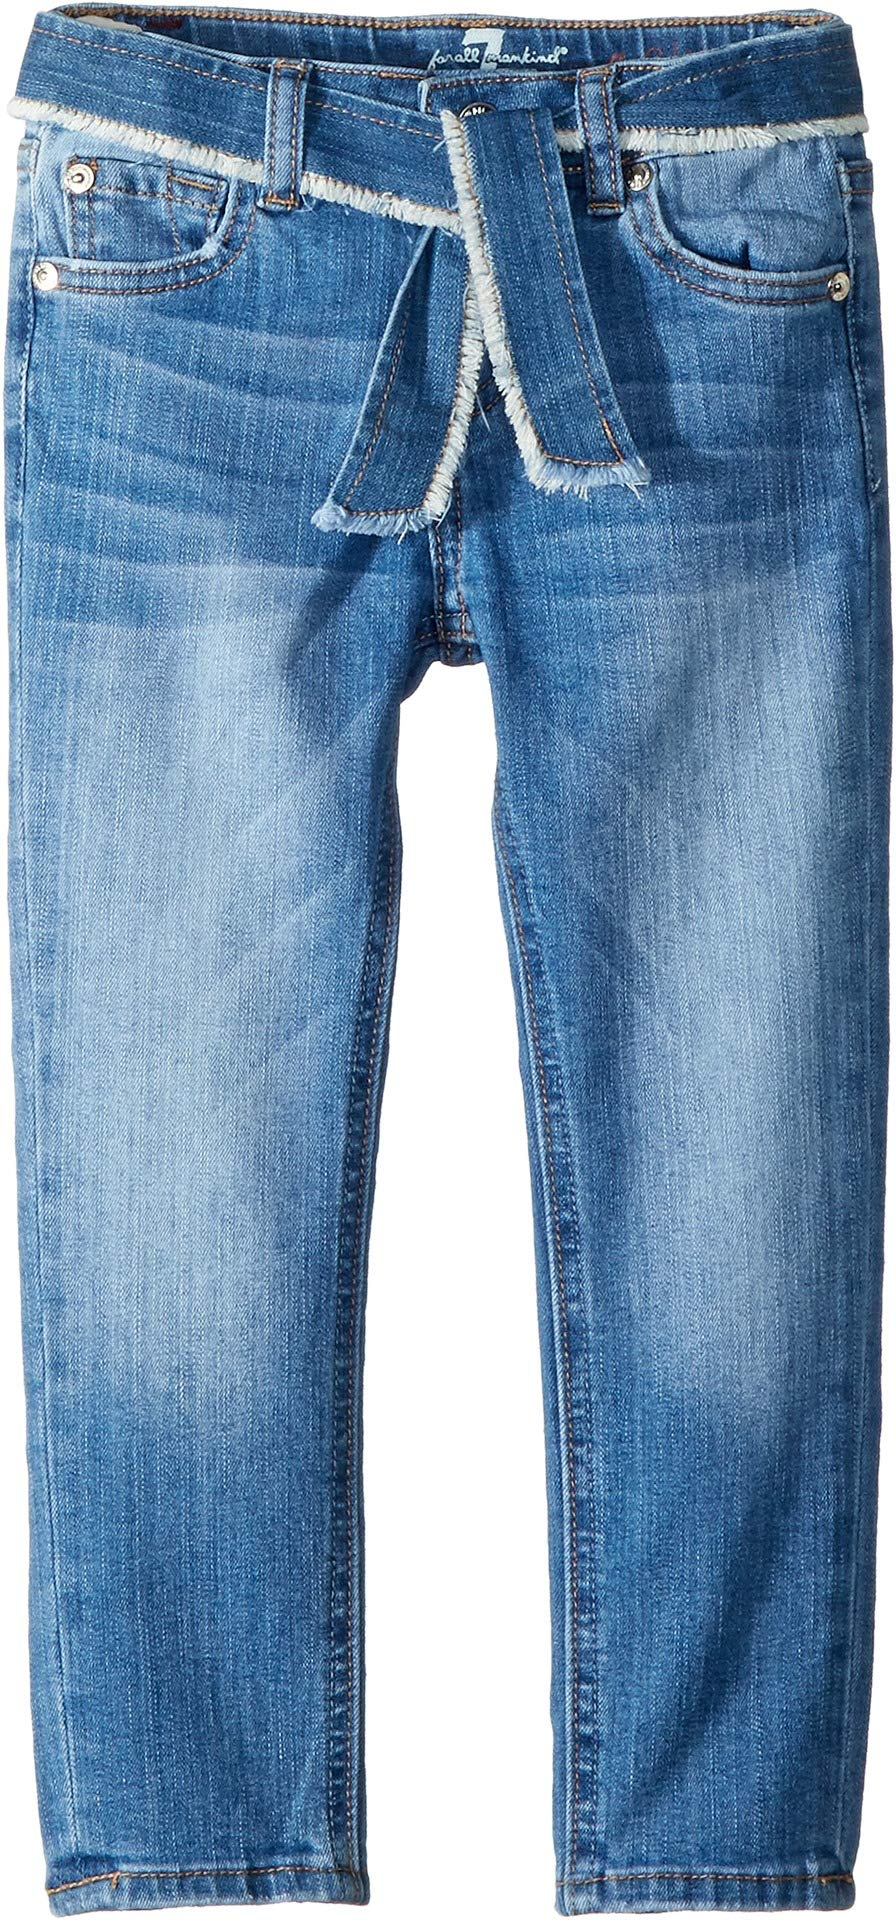 7 For All Mankind Kids Girl's Skinny Stretch Denim Jeans in Adelaide Bright Blue (Little Kids) Adelaide Bright Blue 5